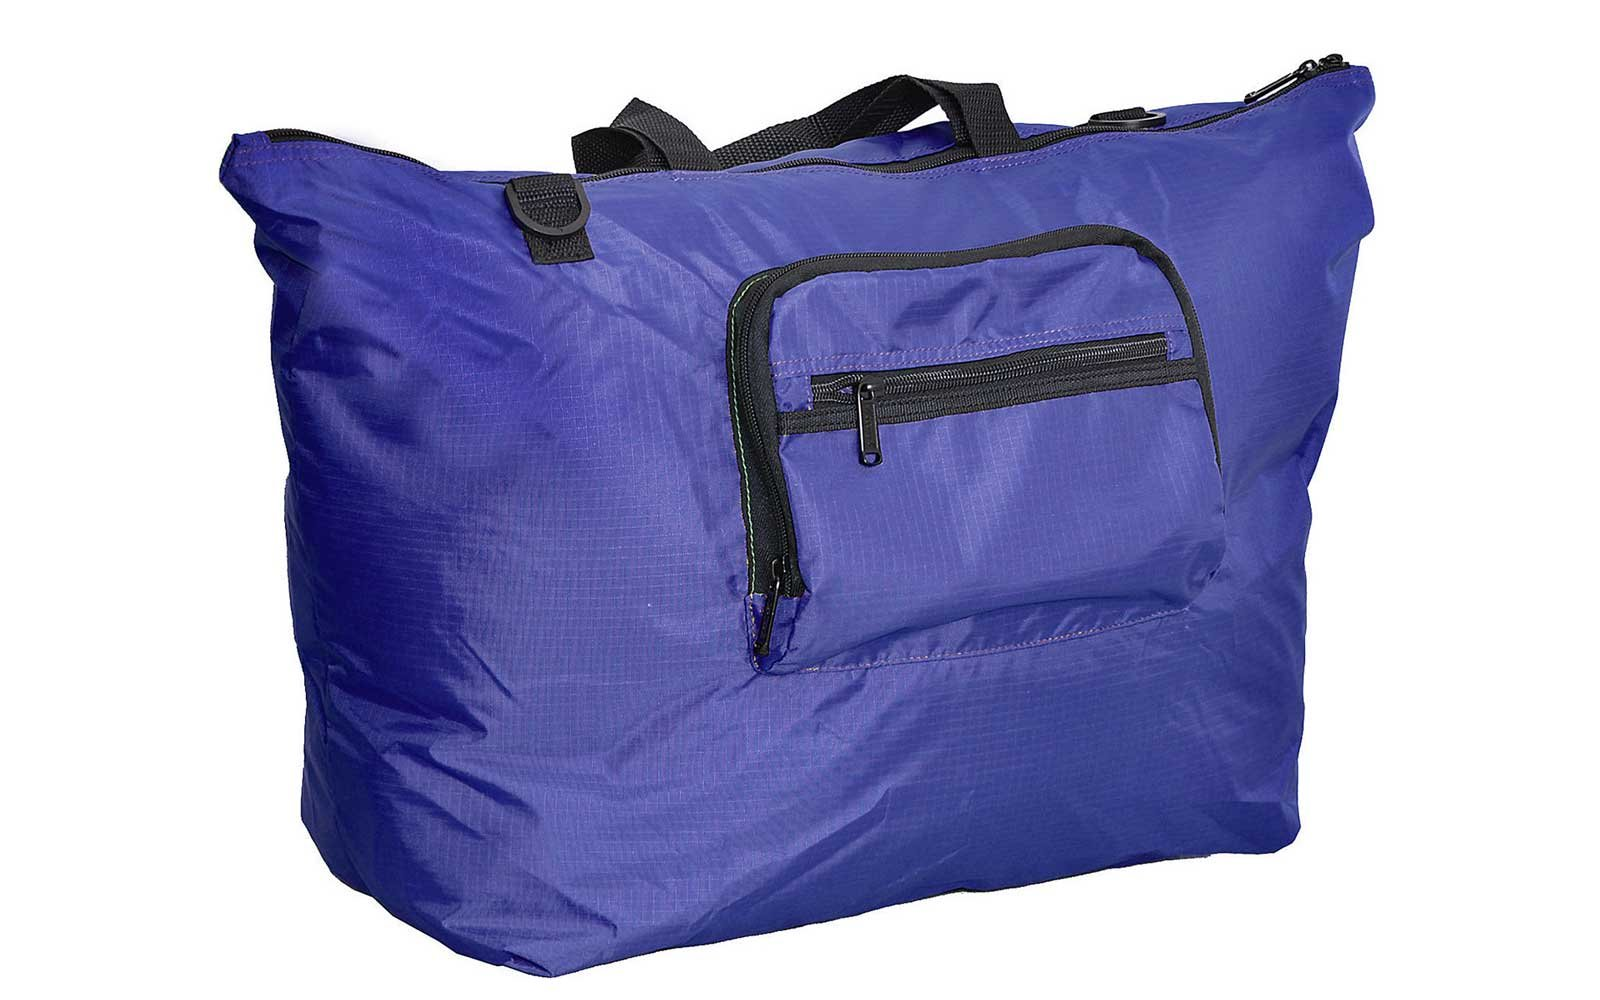 Lightweight Totes for Travel